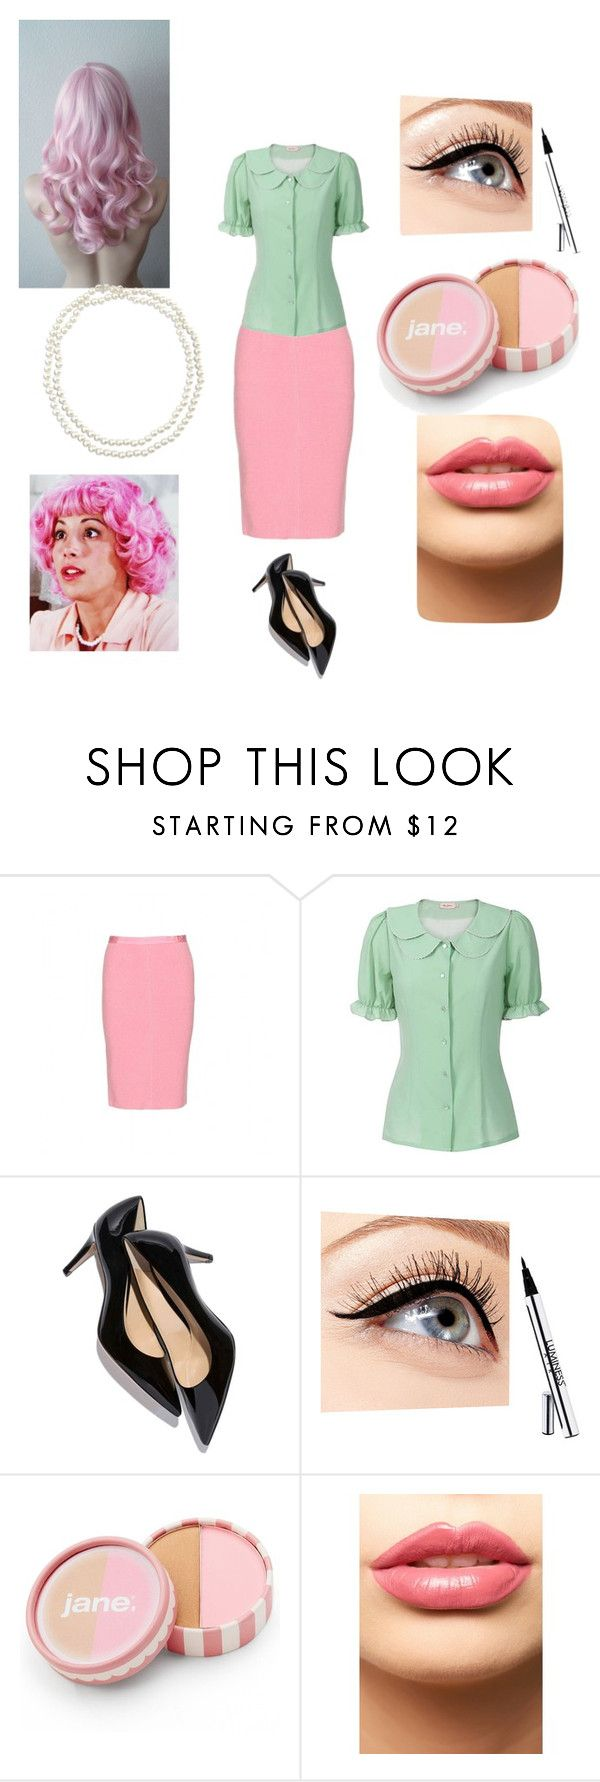 """Frenchy (Grease)"" by broadway-beauty ❤ liked on Polyvore featuring Nina Ricci, Miss Patina, Luminess Air, jane, LASplash, Chico's, women's clothing, women, female and woman"